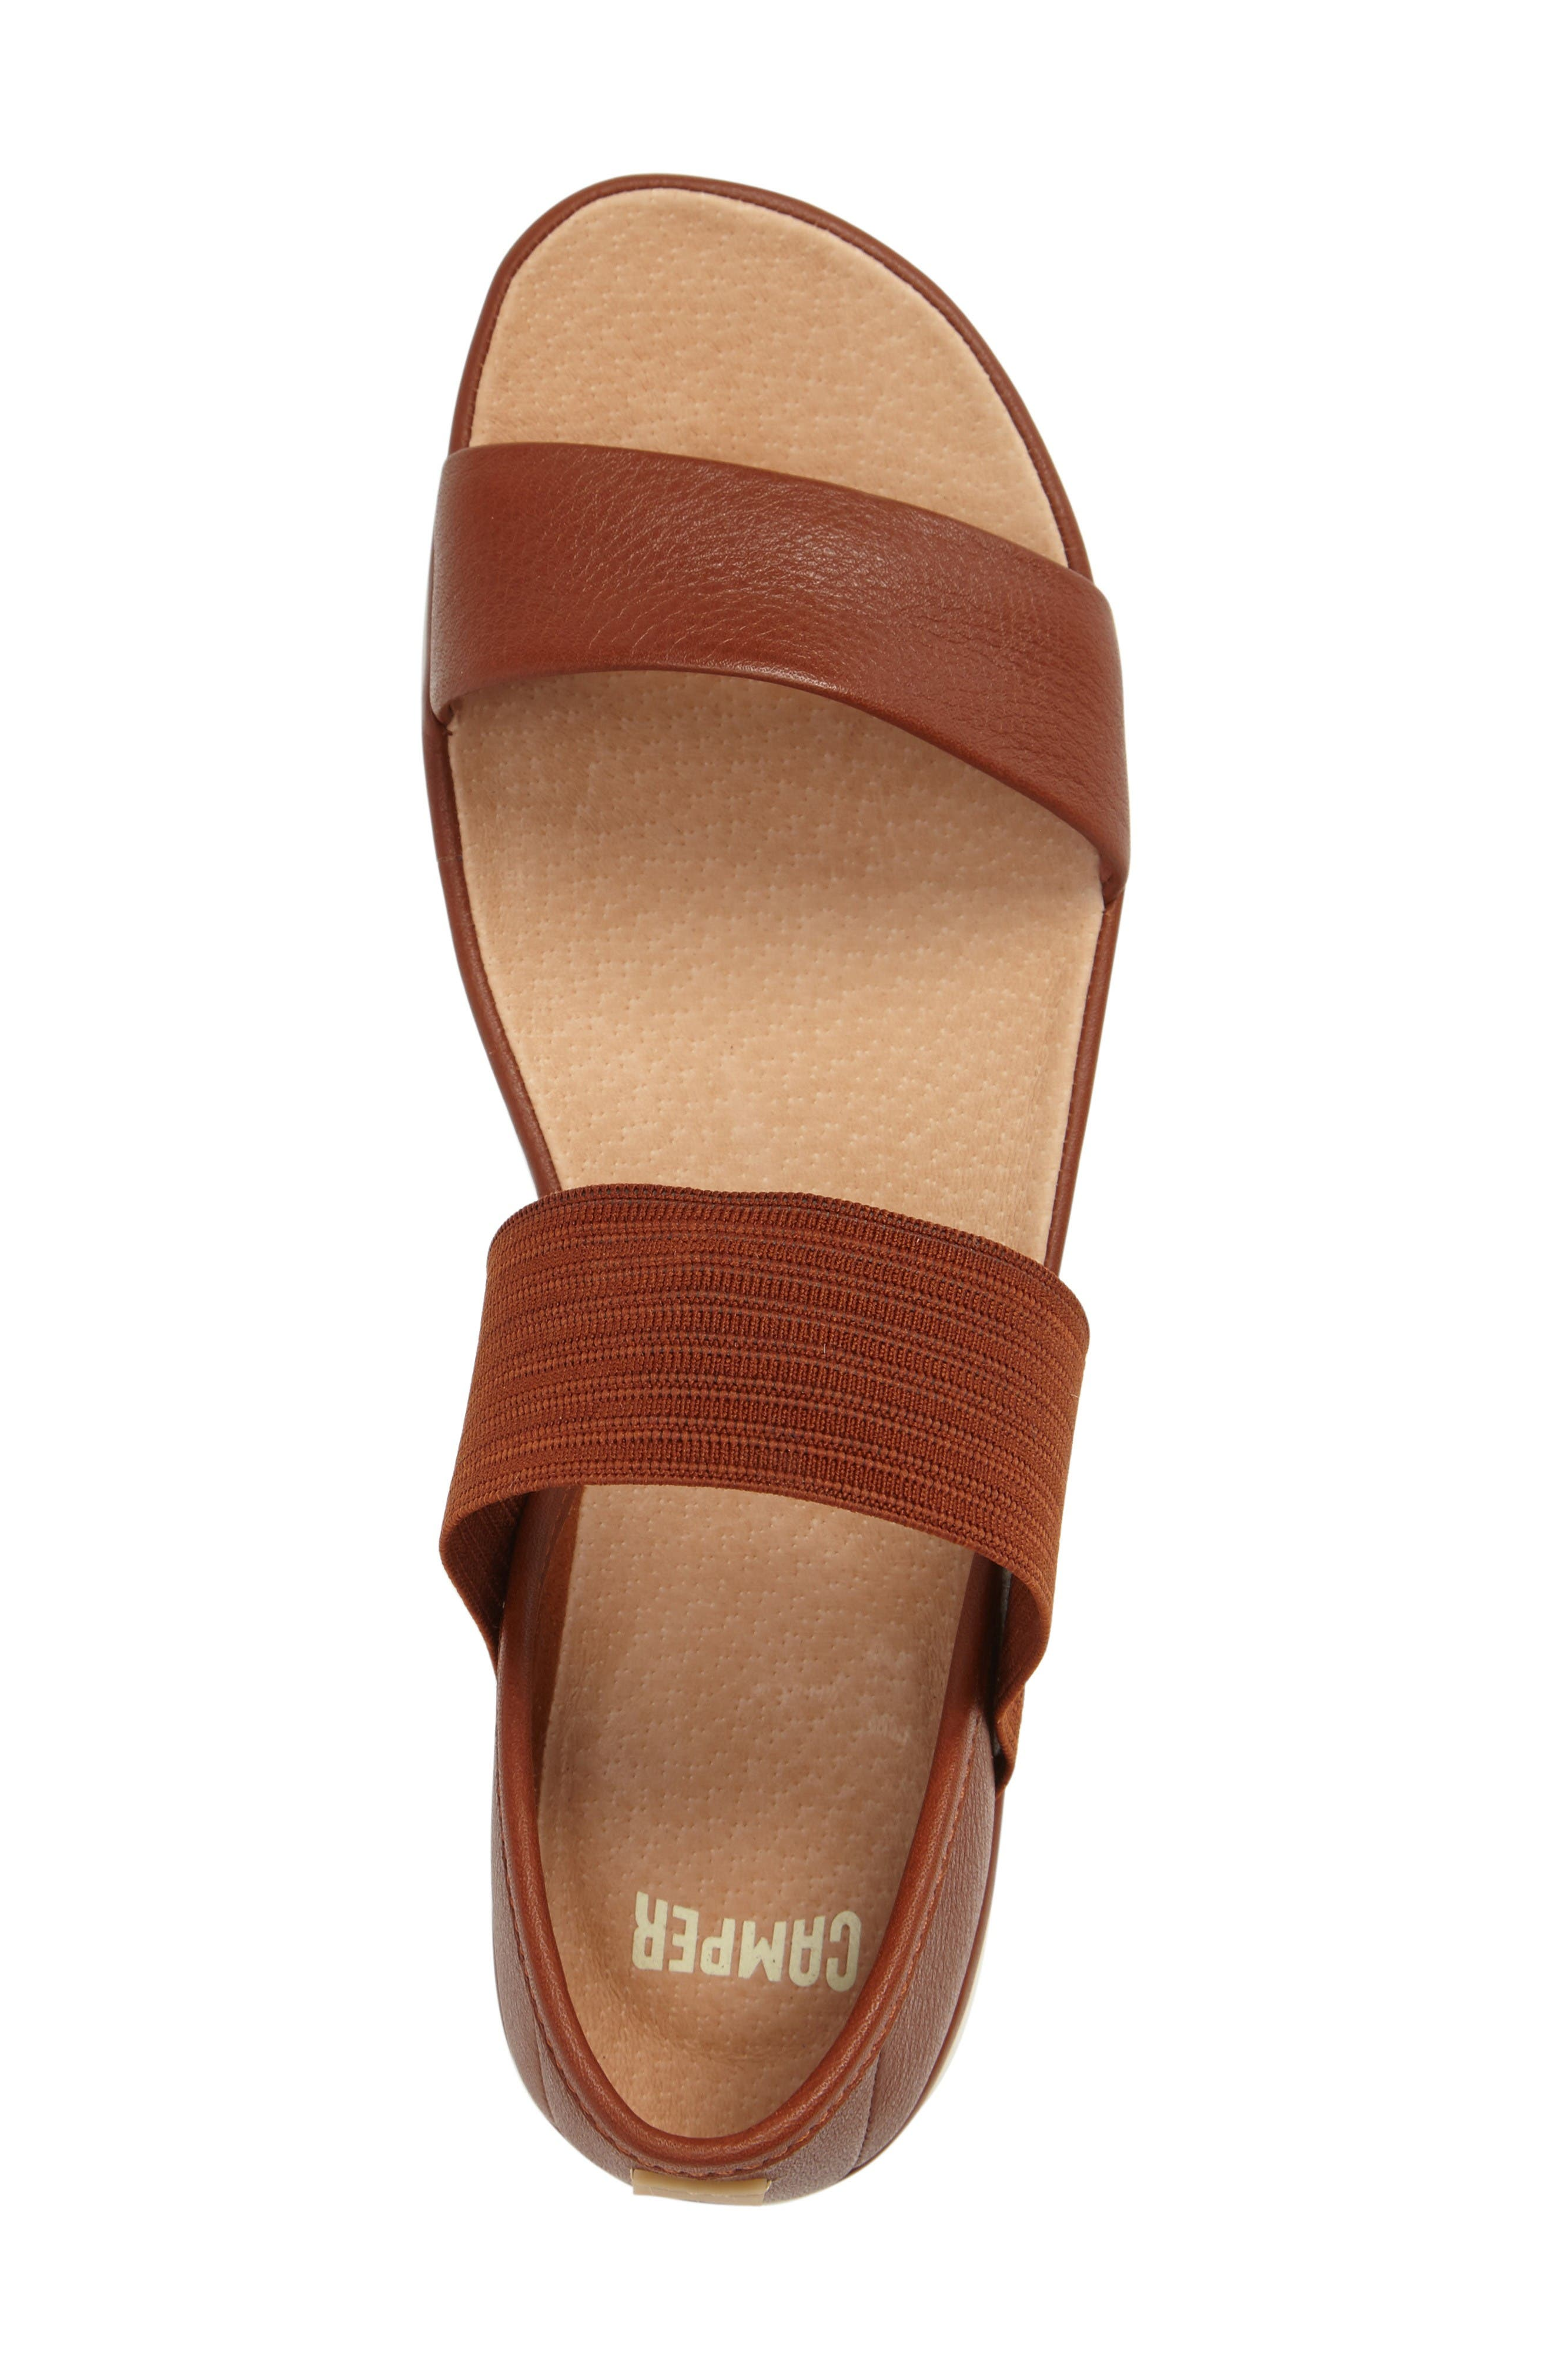 'Right Nina' Sandal,                             Alternate thumbnail 3, color,                             Brown Leather